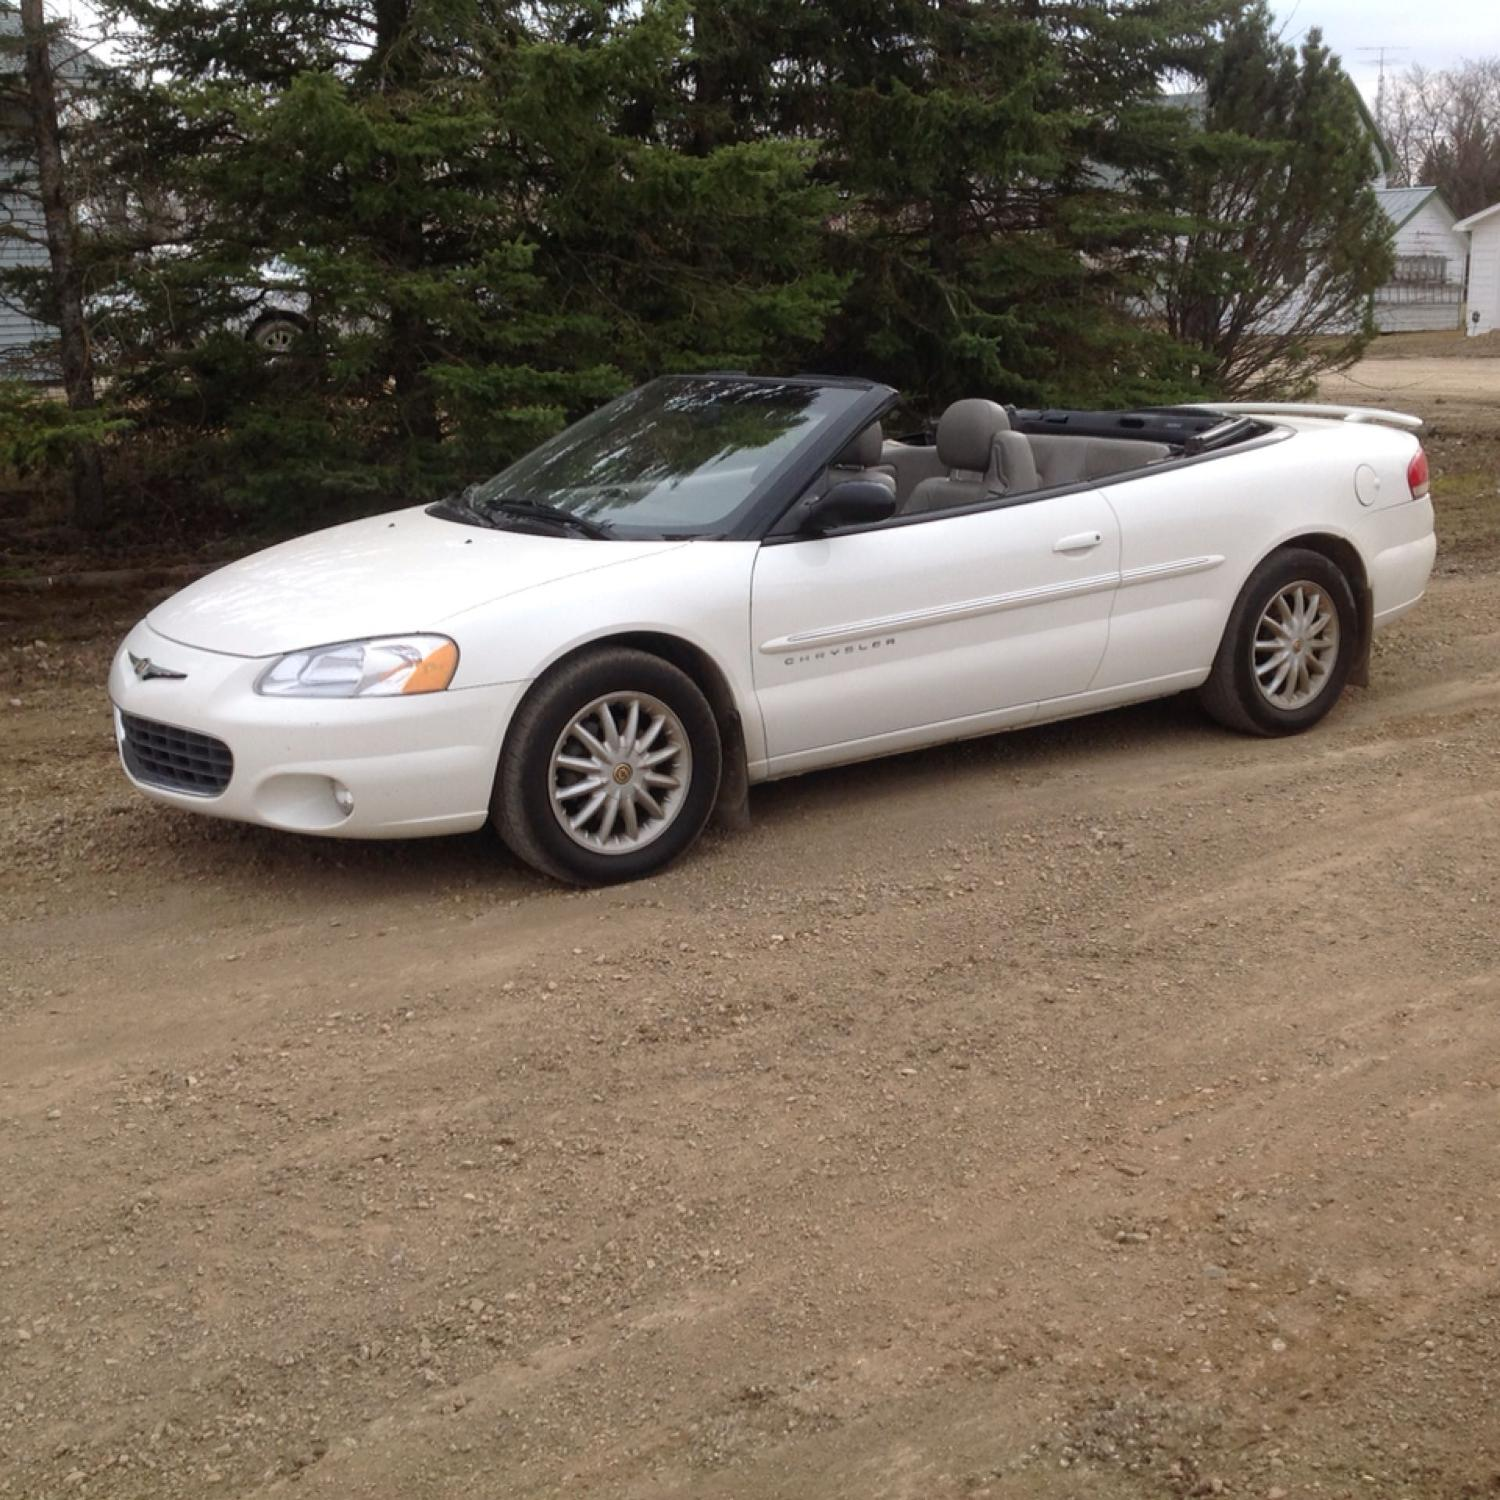 Best 2001 Chrysler Sebring Lxi Convertible For Sale In